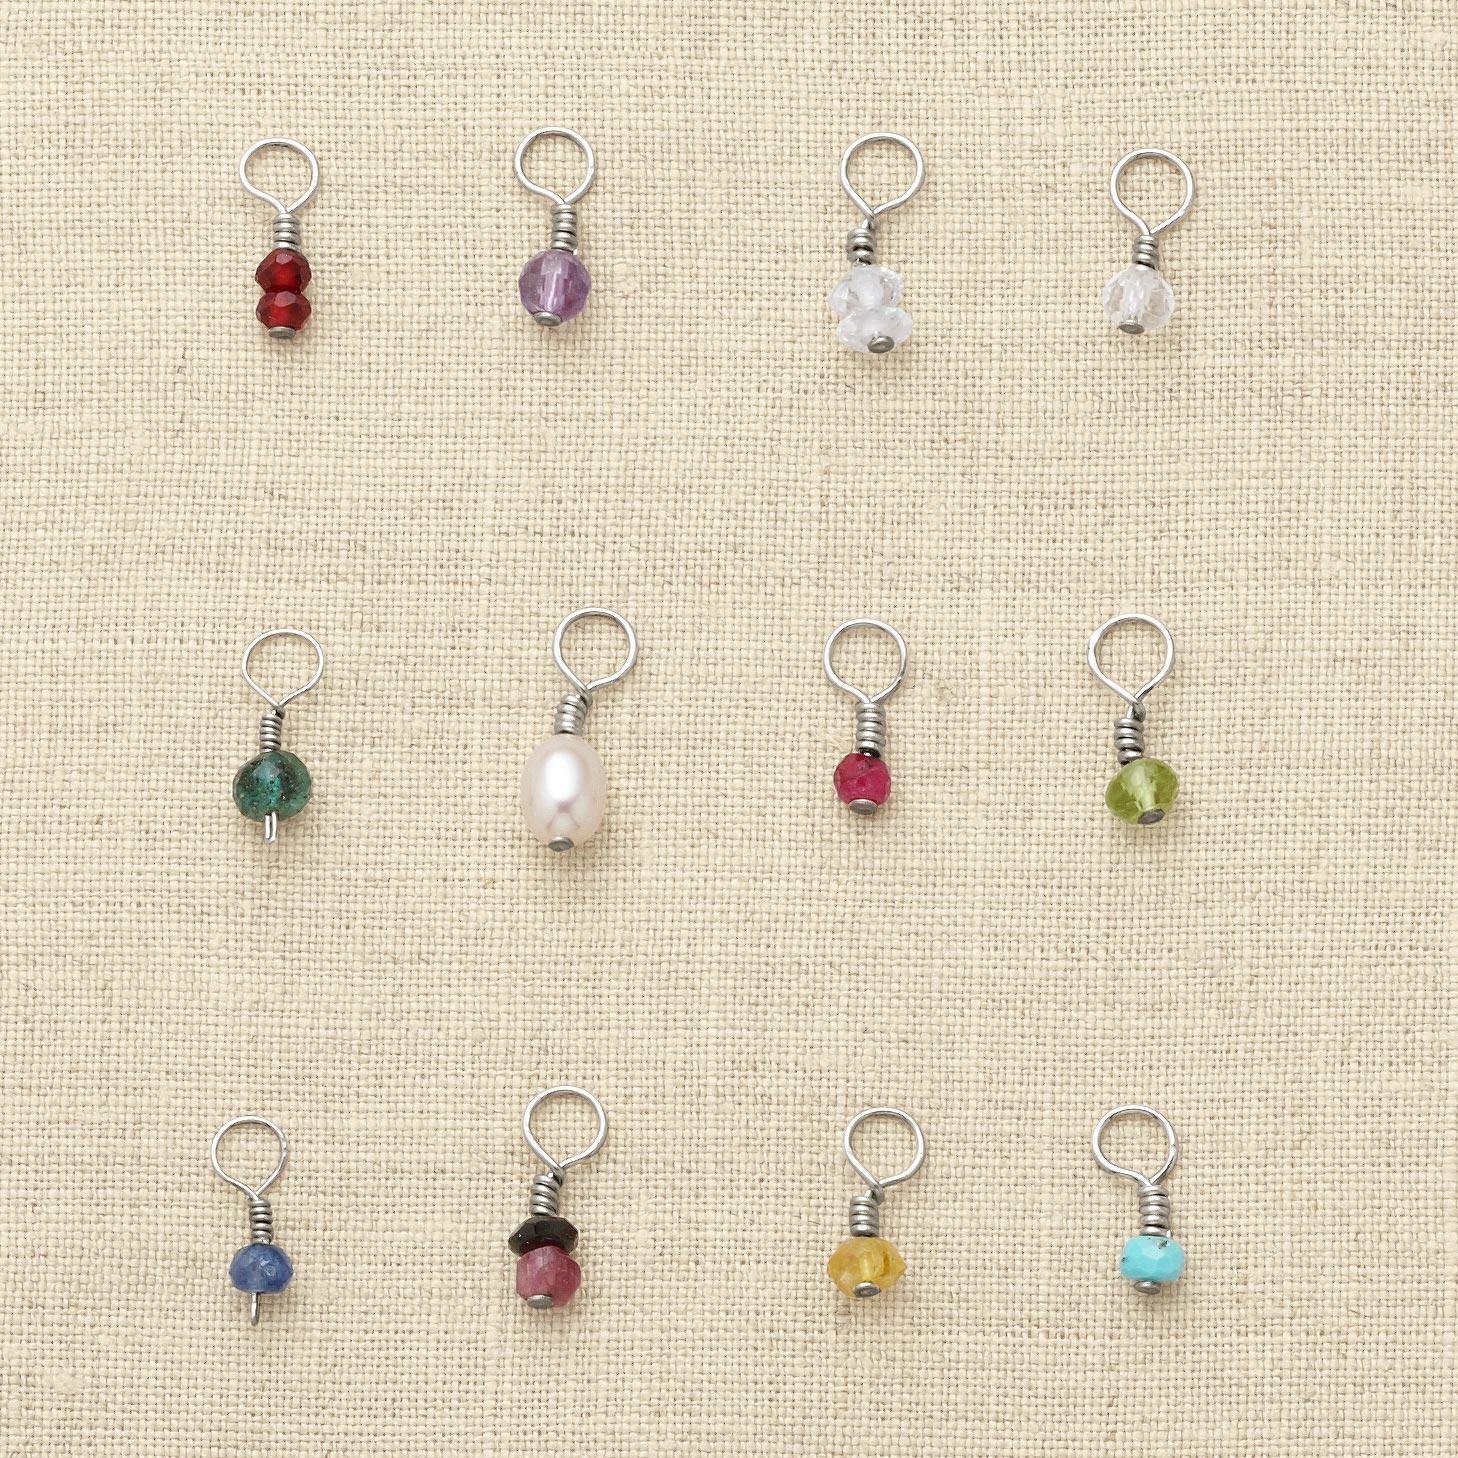 BIRTHSTONE CHARMS: View 1